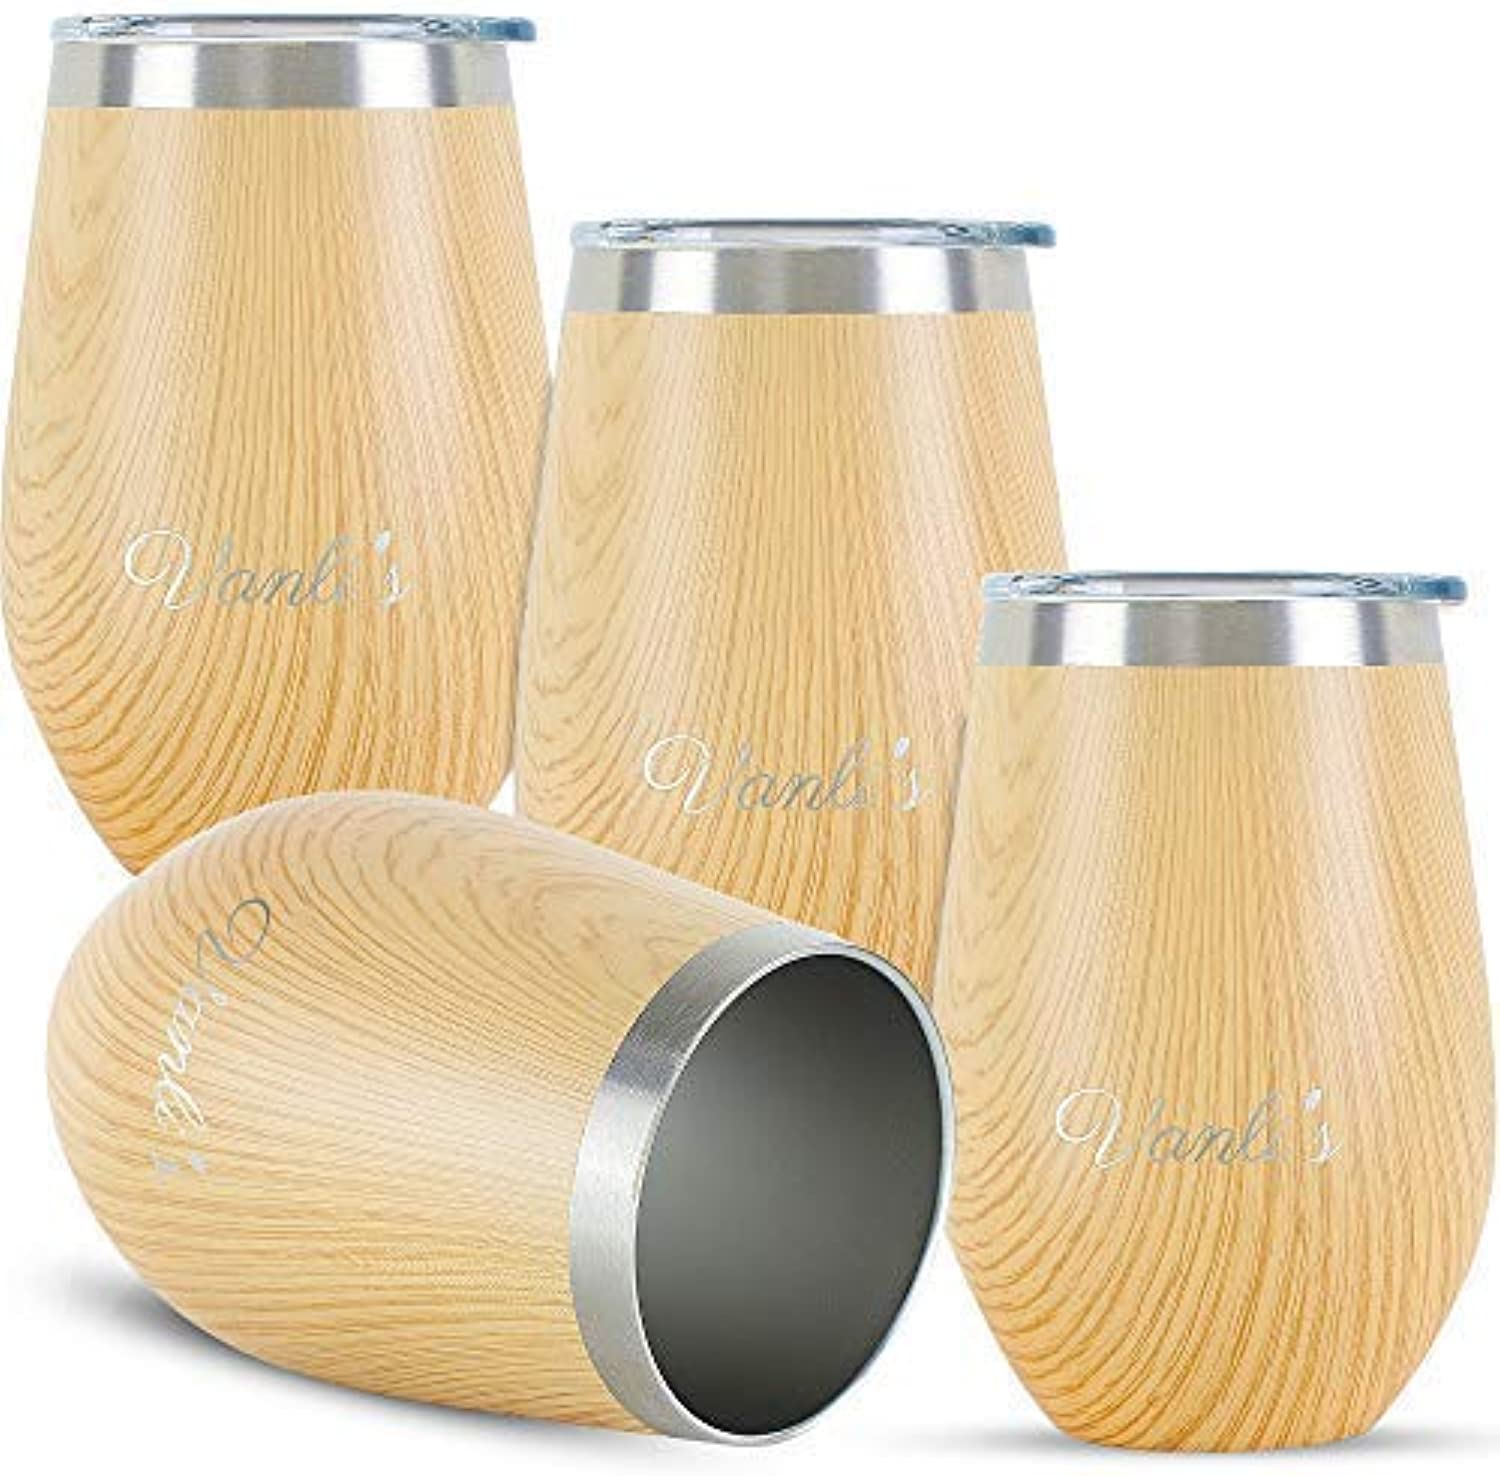 Vanli's Fancy 12oz Wine Tumbler   Double-Wall Vacuum-Insulated Cups to Maintain Temperature for 6 Hours   for Indoor, Travel, Outdoor & Drinking   Durable Stainless-Steel Beige Wood   Pack of 4